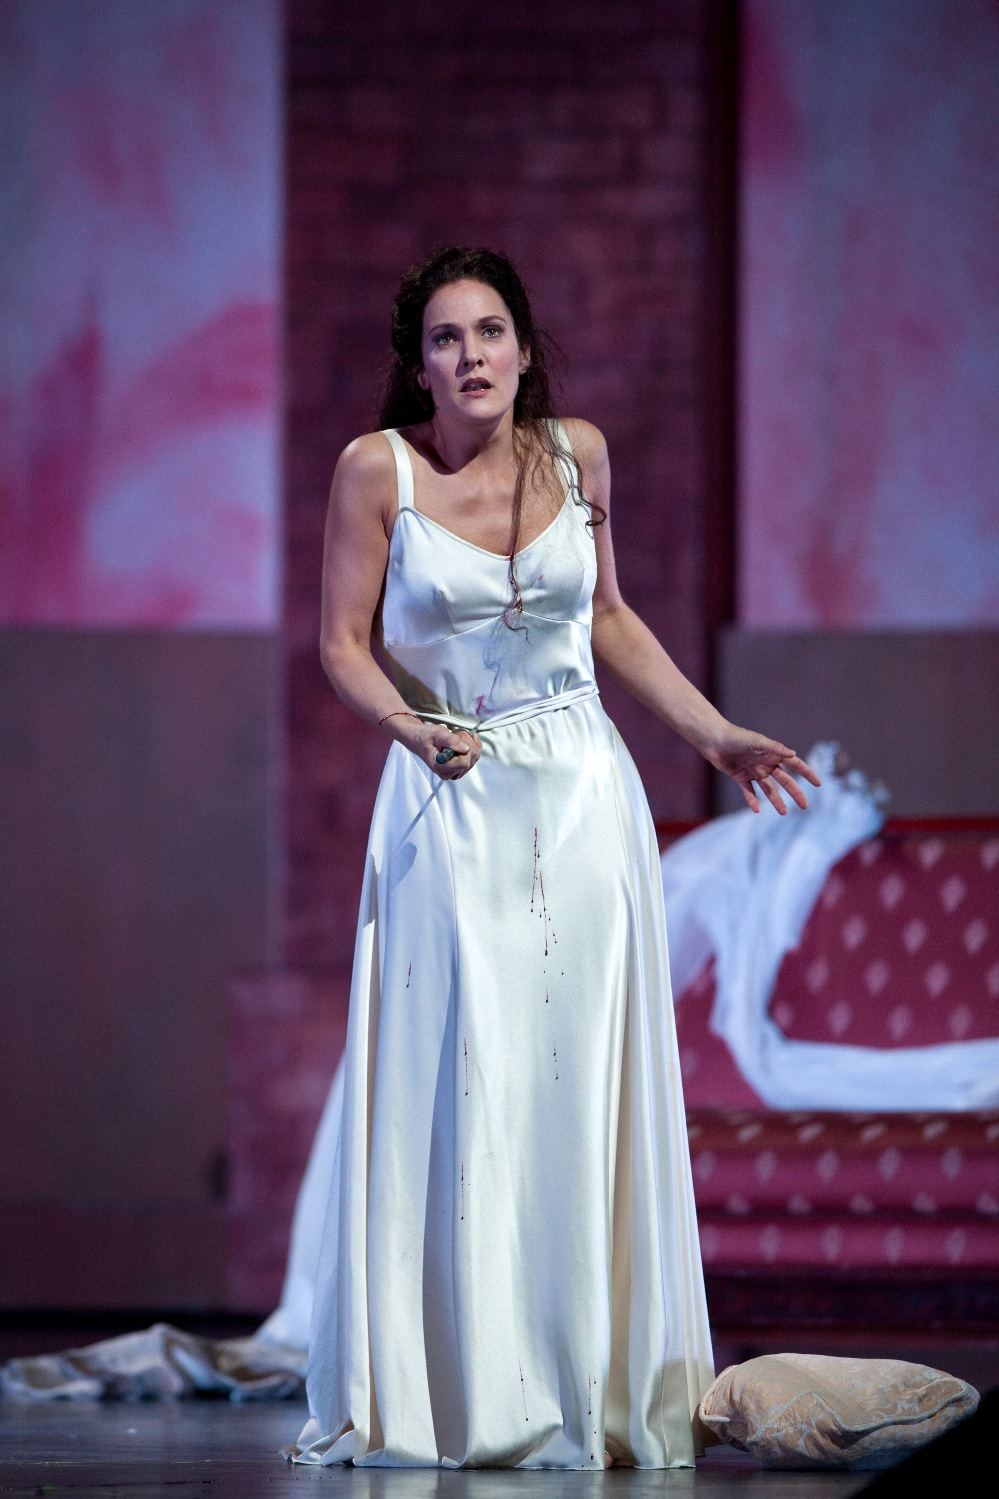 dessay met hamlet The metropolitan opera in new york has announced that coloratura soprano natalie dessay has withdrawn from their up-coming production of ambroise thomas' hamlet due to illness.